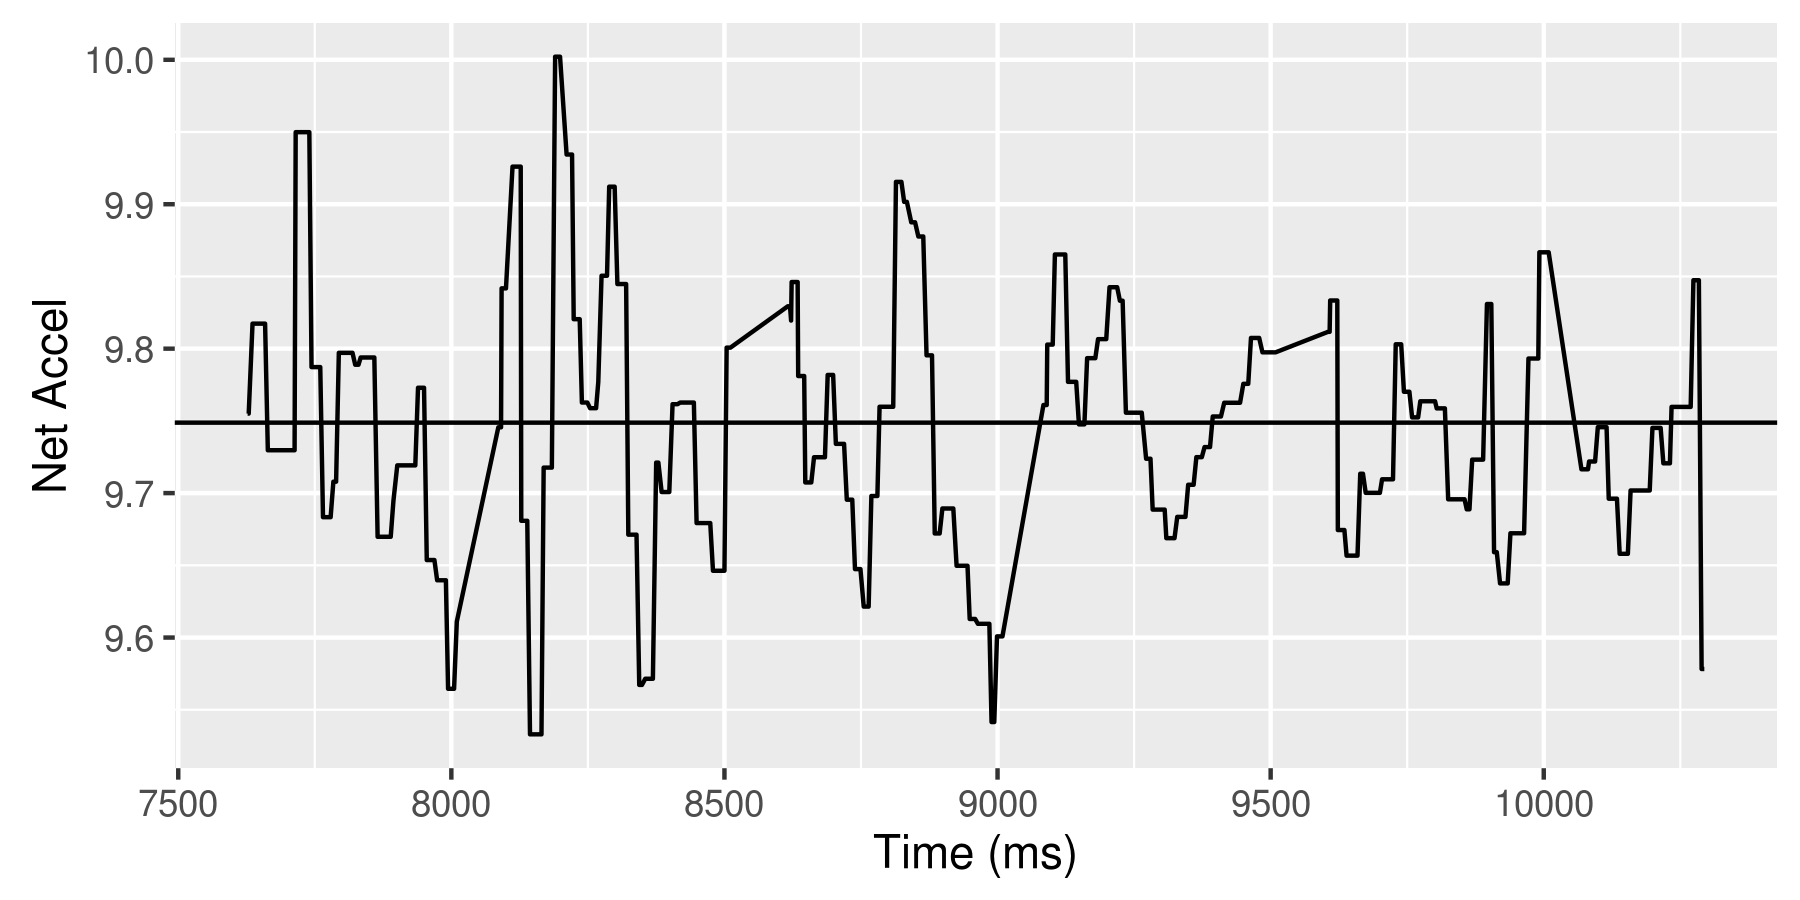 Accelerometer calibration data for the tree